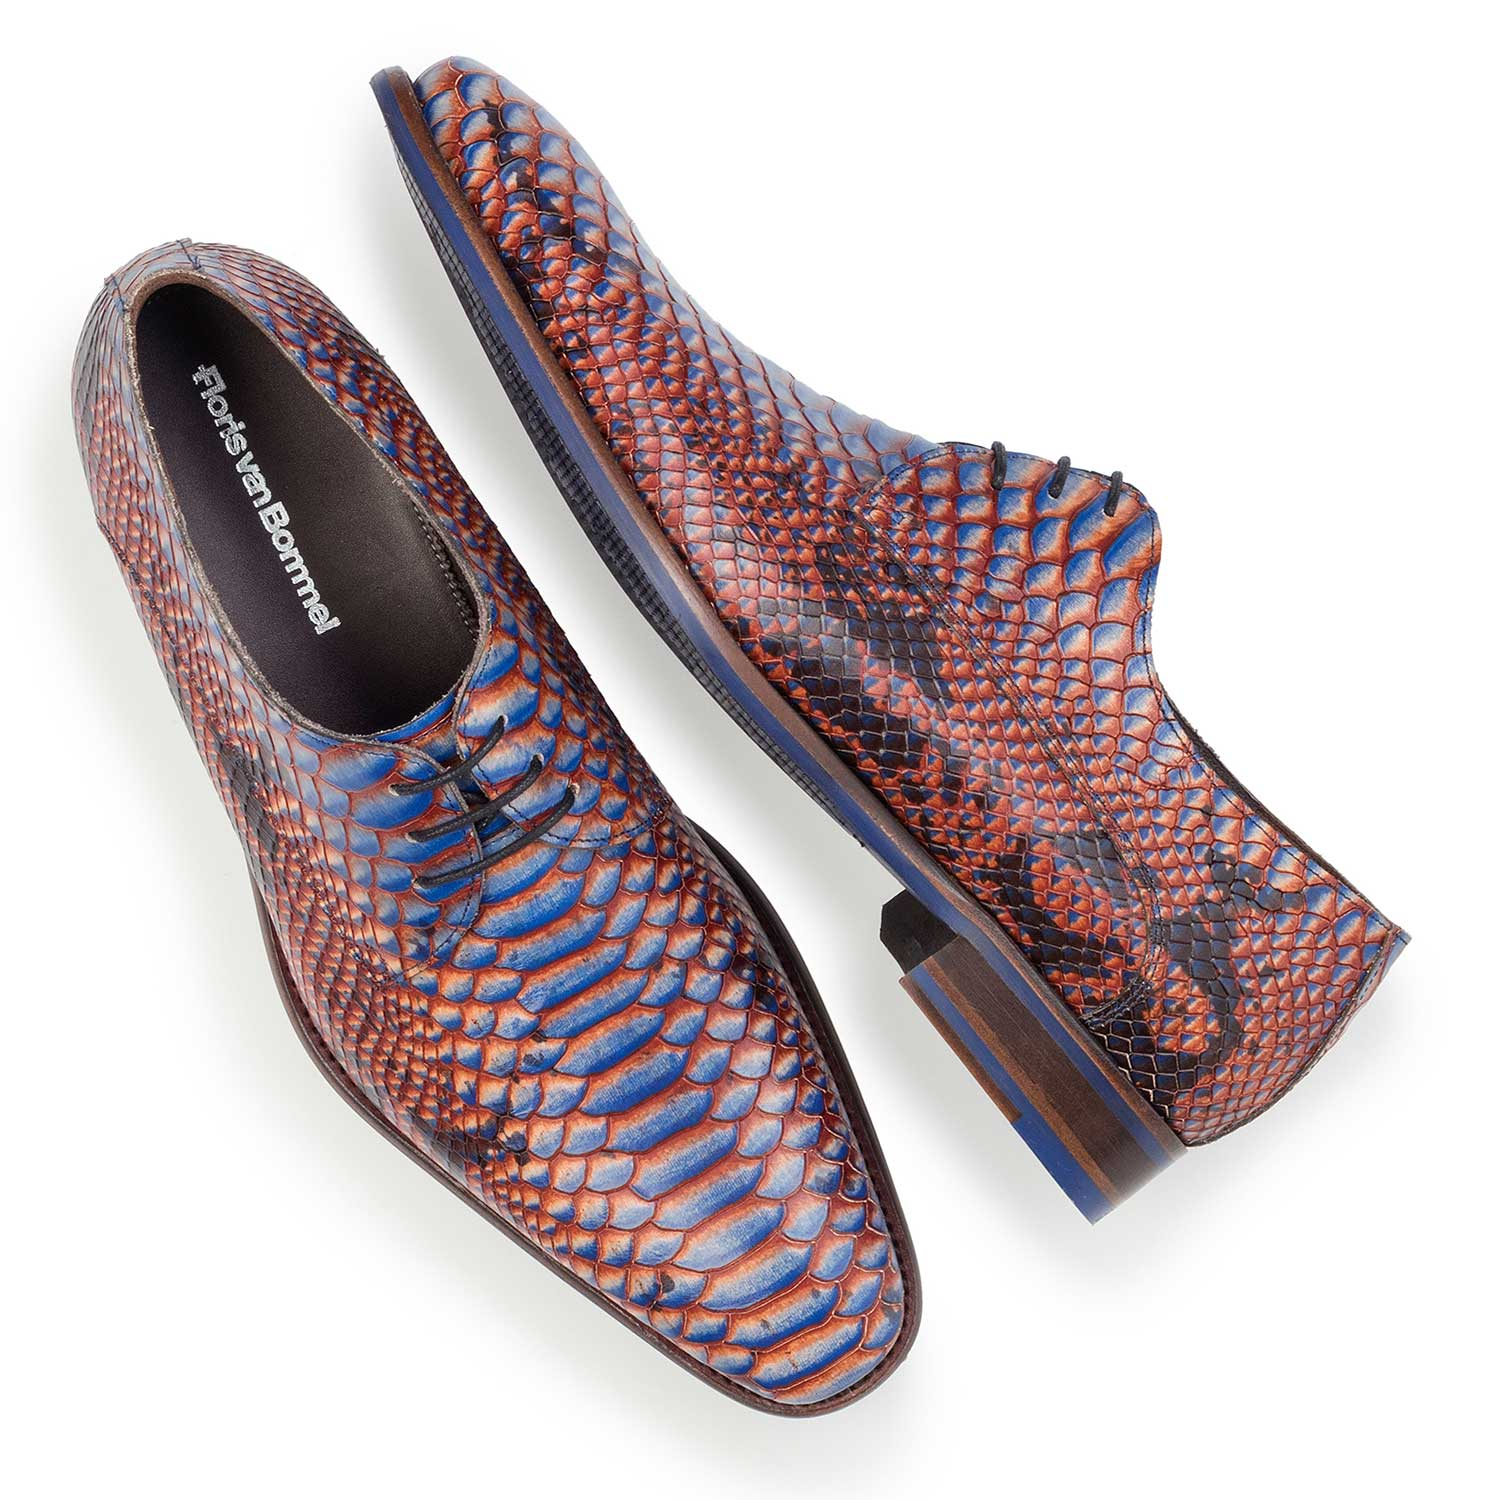 14204/00 - Blue leather lace shoe with snake print